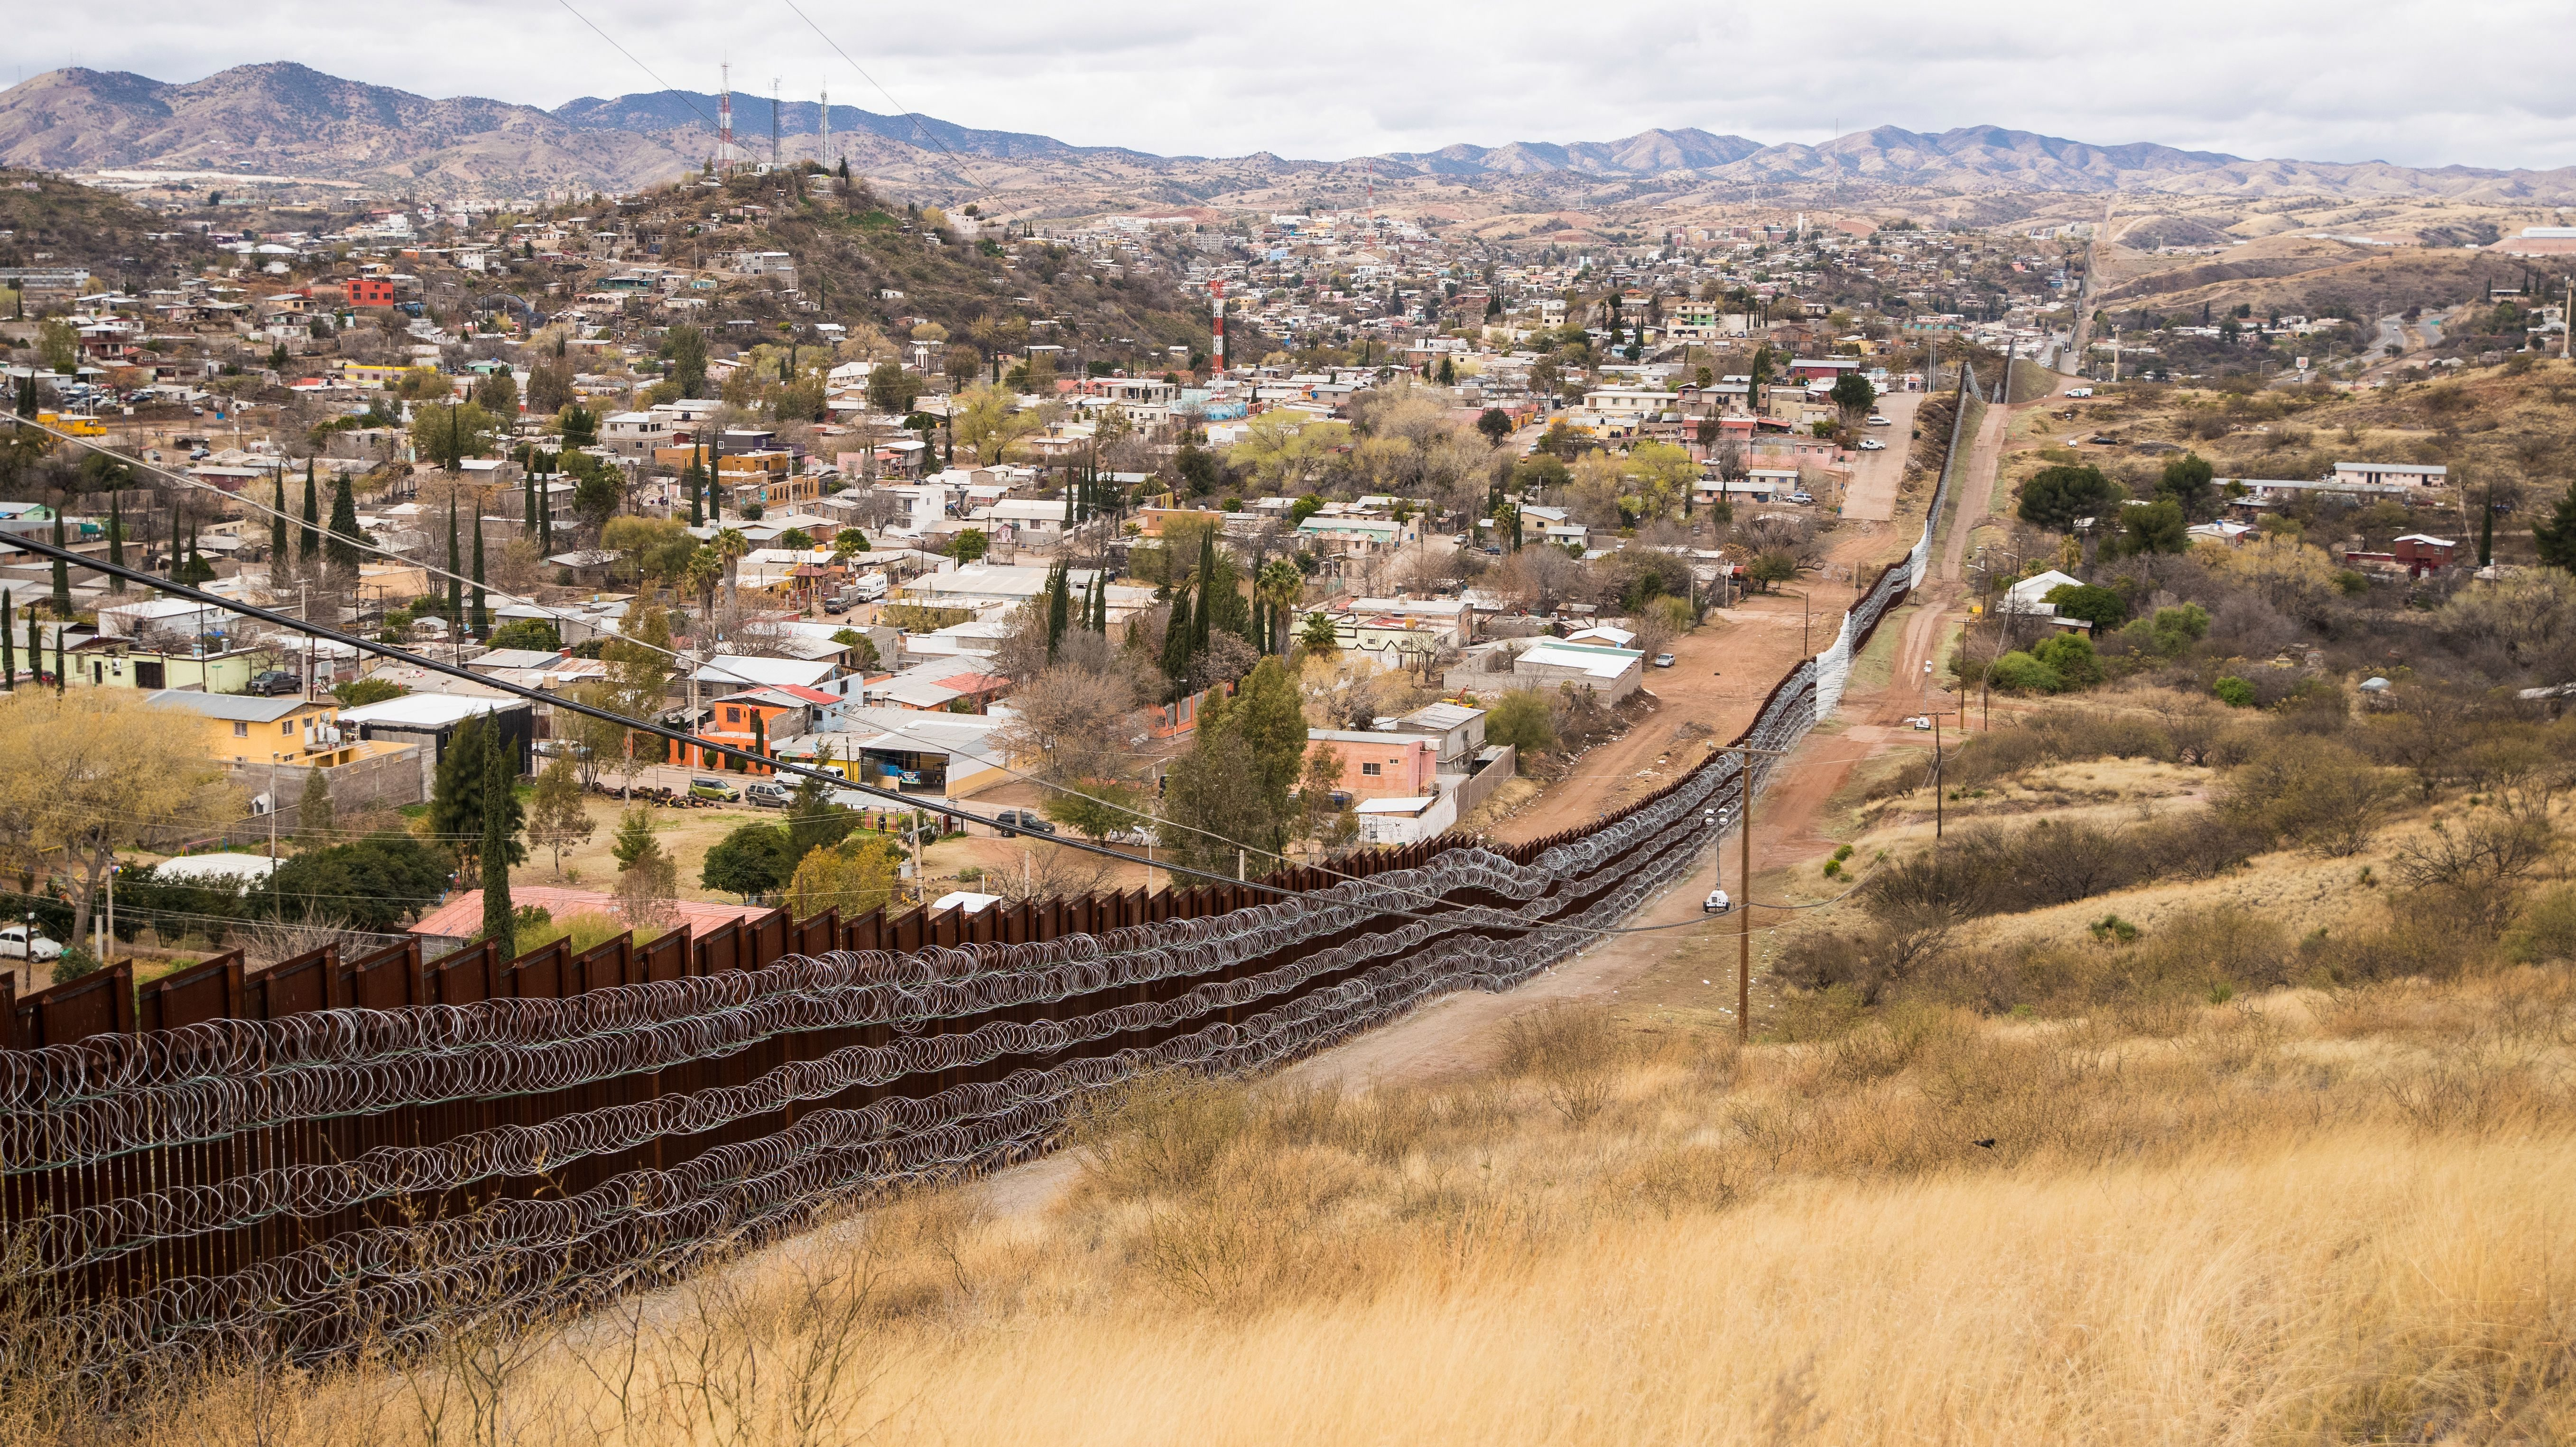 Nogales Border Wall and concertina Wire